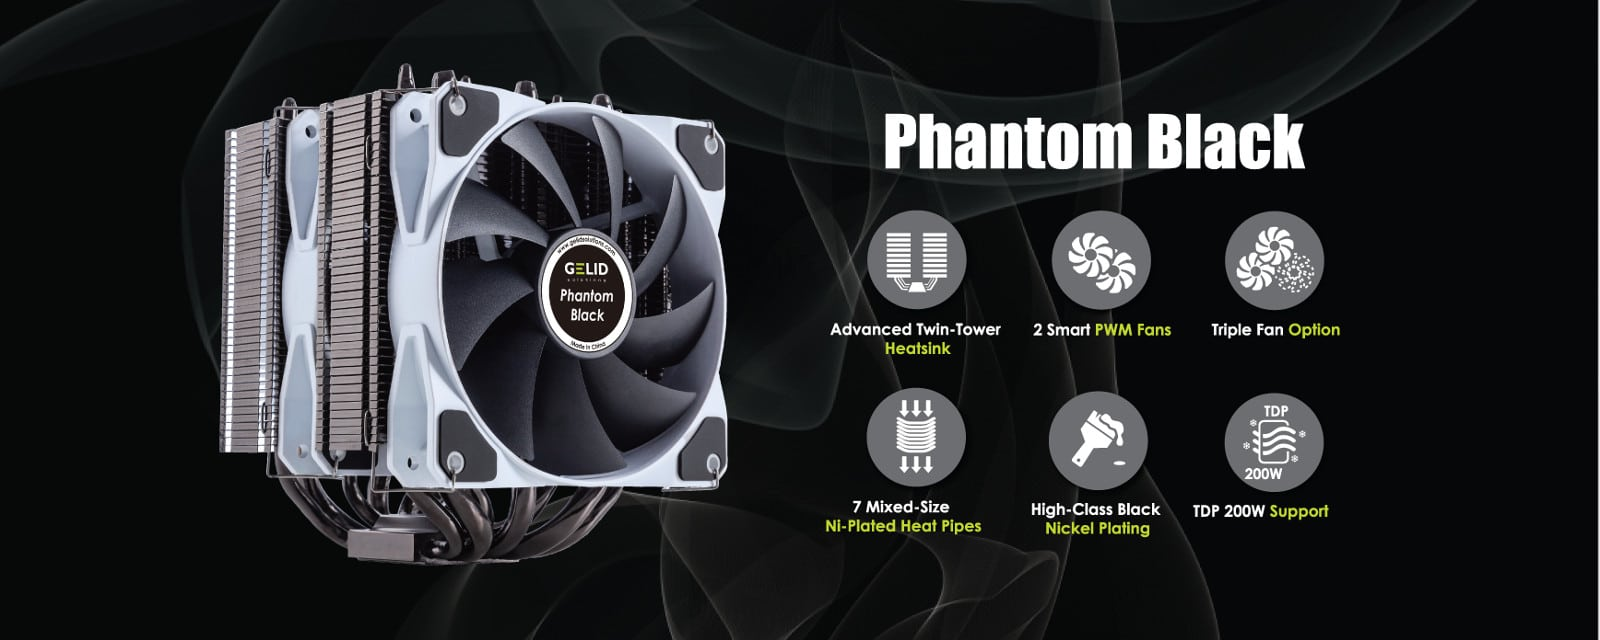 Phantom Black CPU Cooler